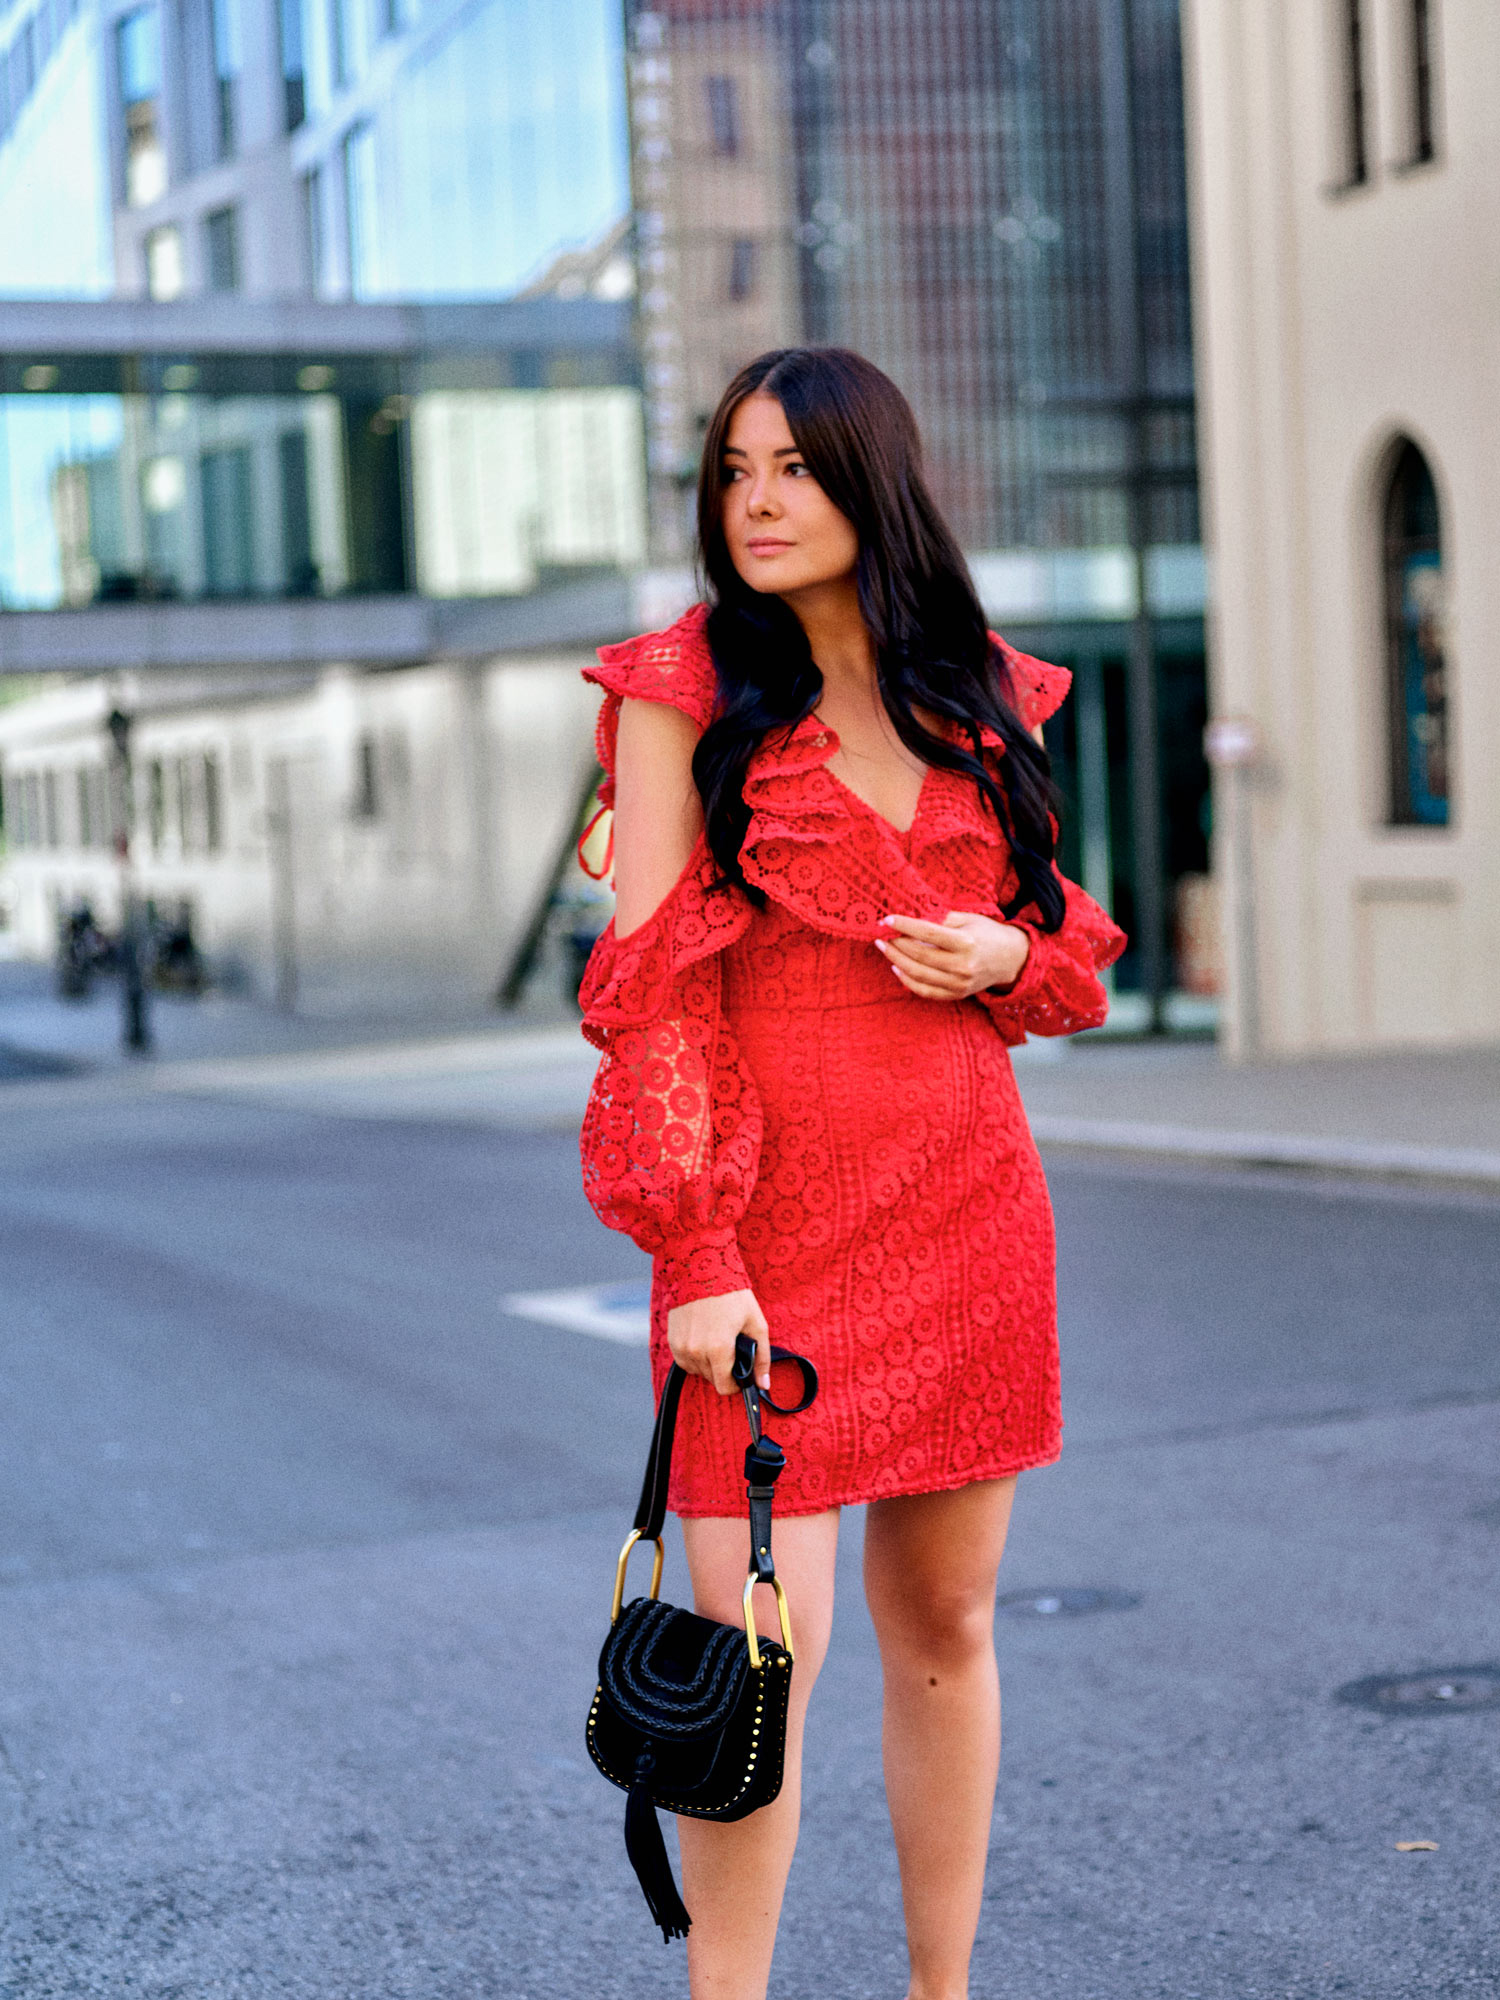 fashion-blogger-aus-muenchen-fashionblogger-lifestyleblogger-beautyblogger-fashion-blogger-modeblogger-modeblog-munich-blog-muenchen-farbe-rot-im-sommer